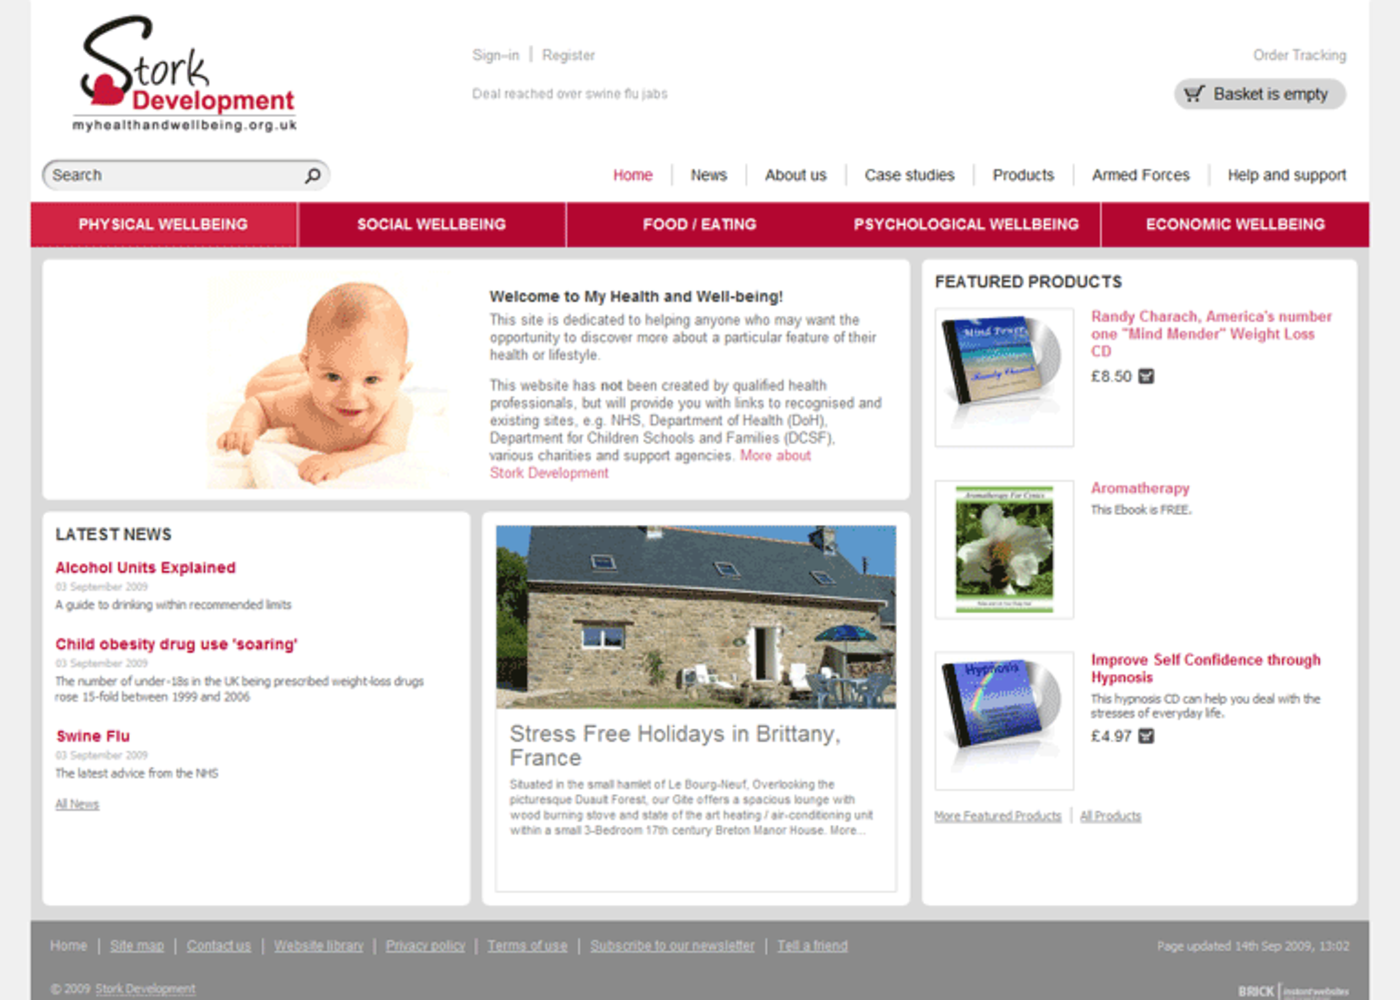 Stork Development Home page